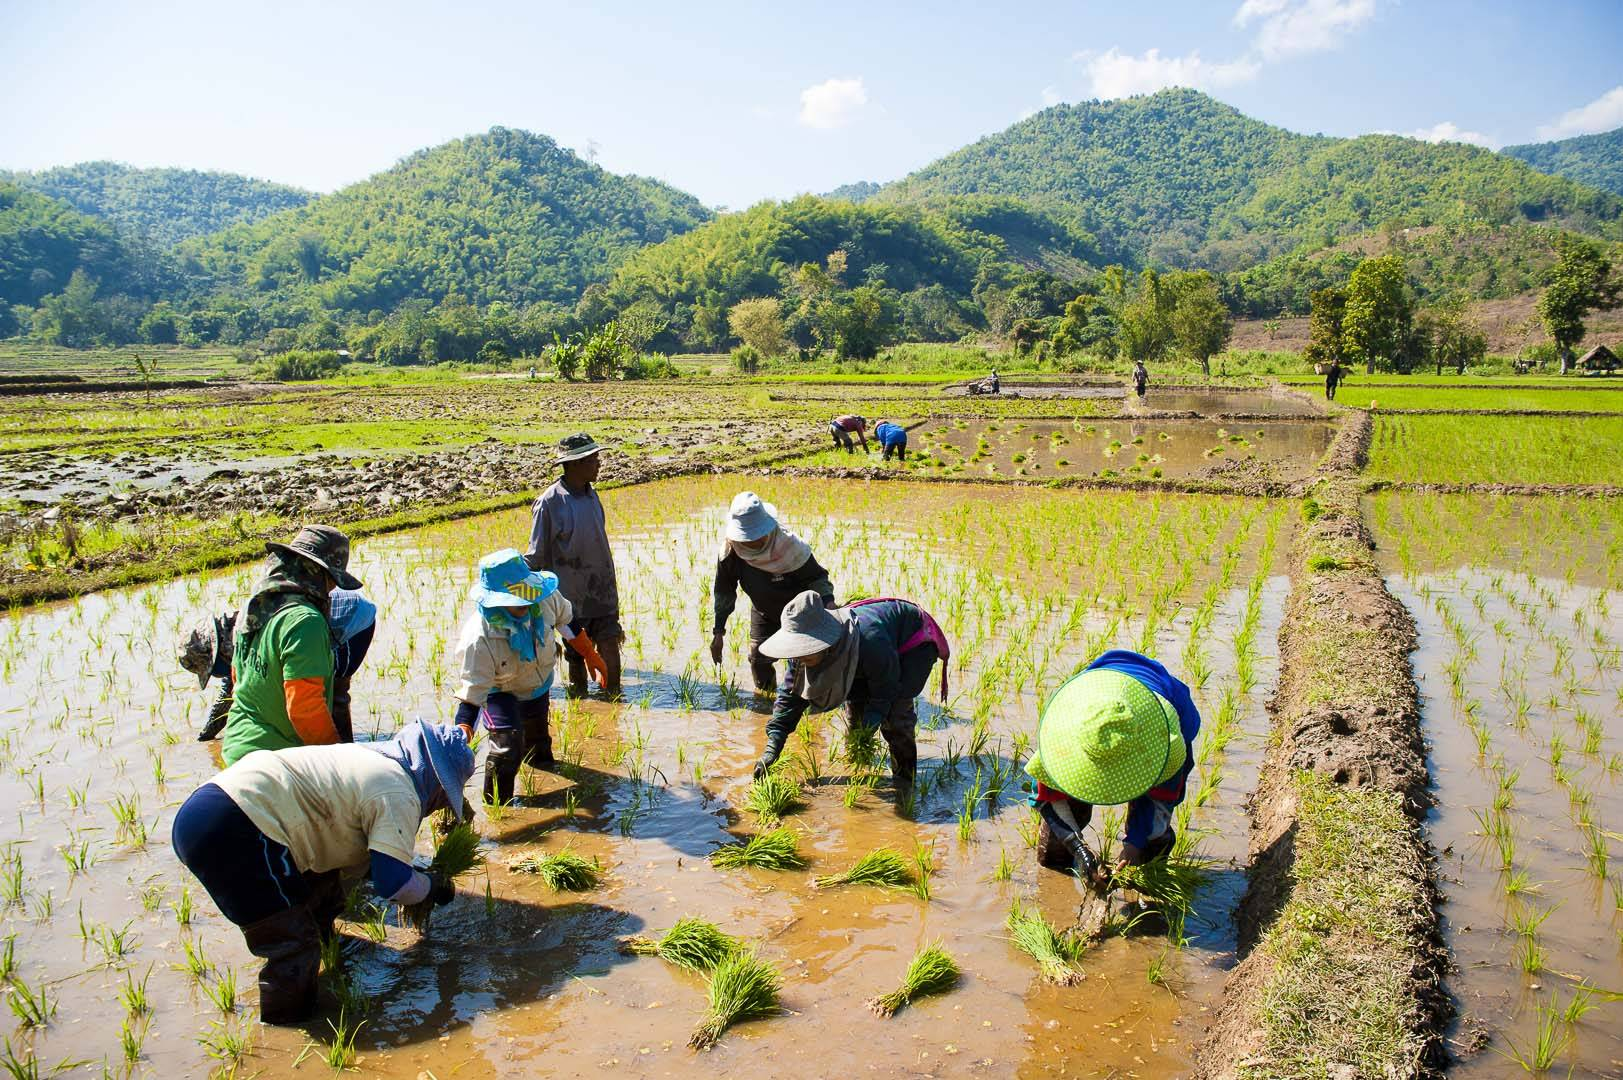 Chiang-Rai-Thailand-rice-field-workers-in-paddy-fields-by-documentary-travel-photographer-Matthew-Williams-Ellis